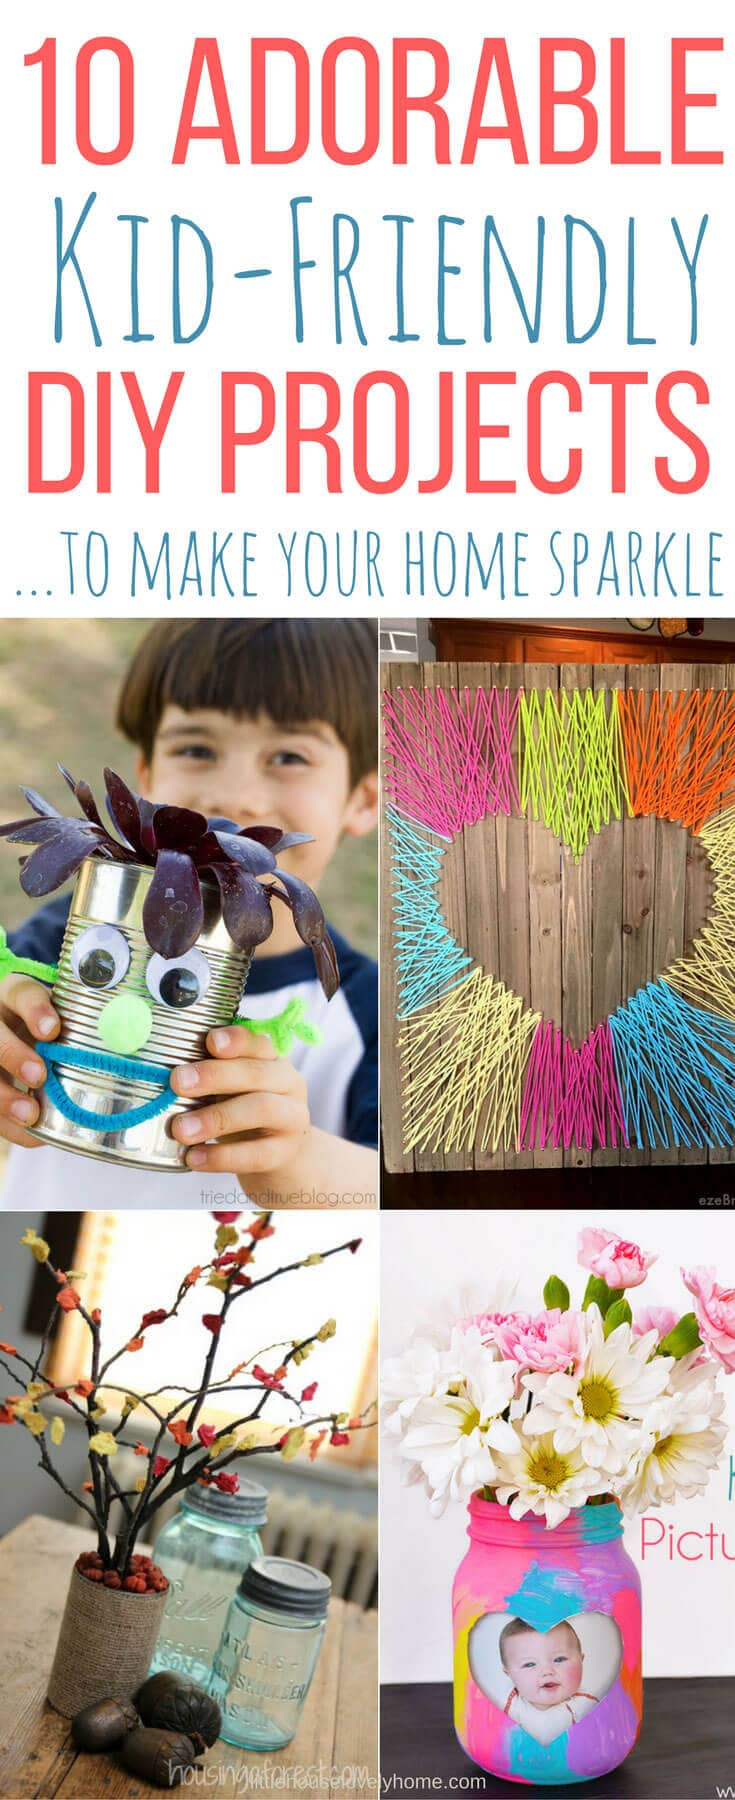 These kid-friendly DIY projects are a fun way to spend quality time with your kids and will help them to put their stamp on your home.